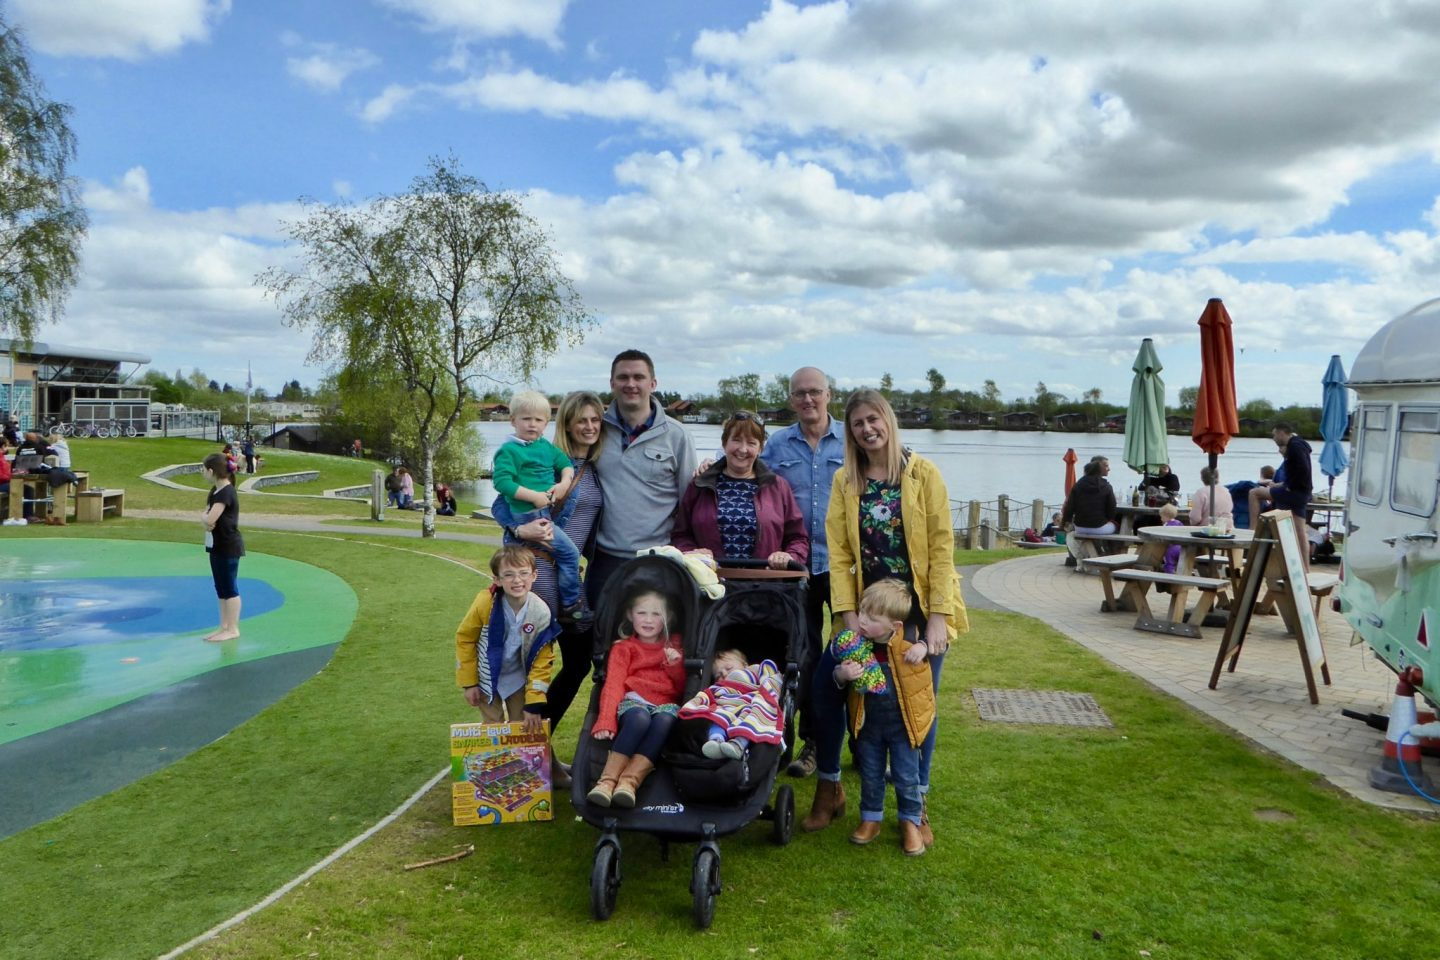 review Tattershall lakes